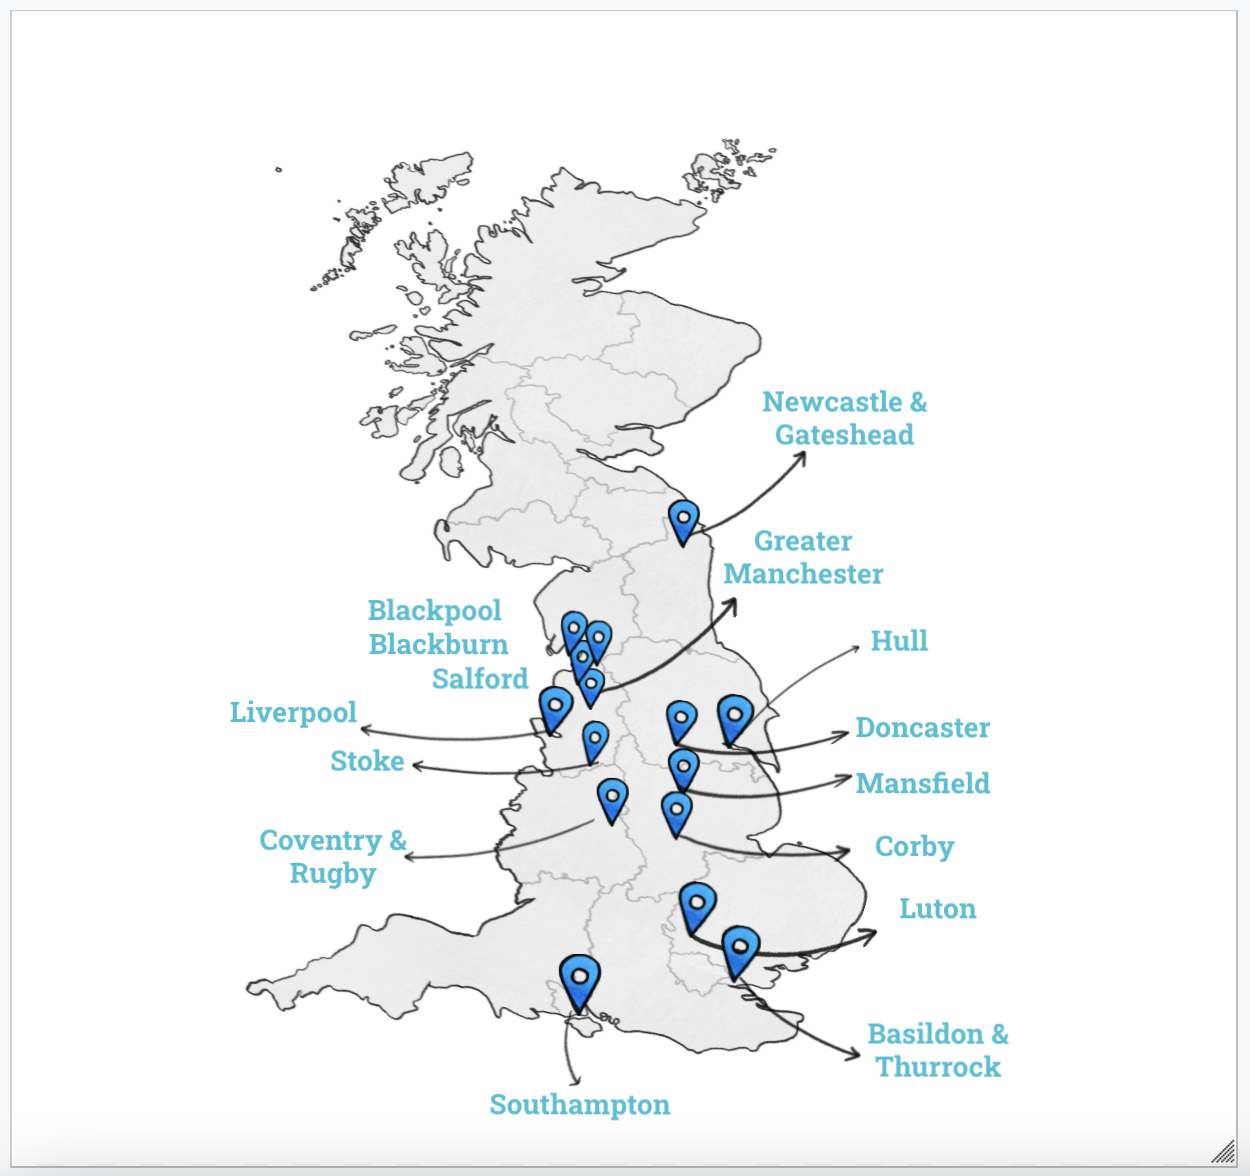 NHS England lung cancer screening programme: a leading implementer of AI